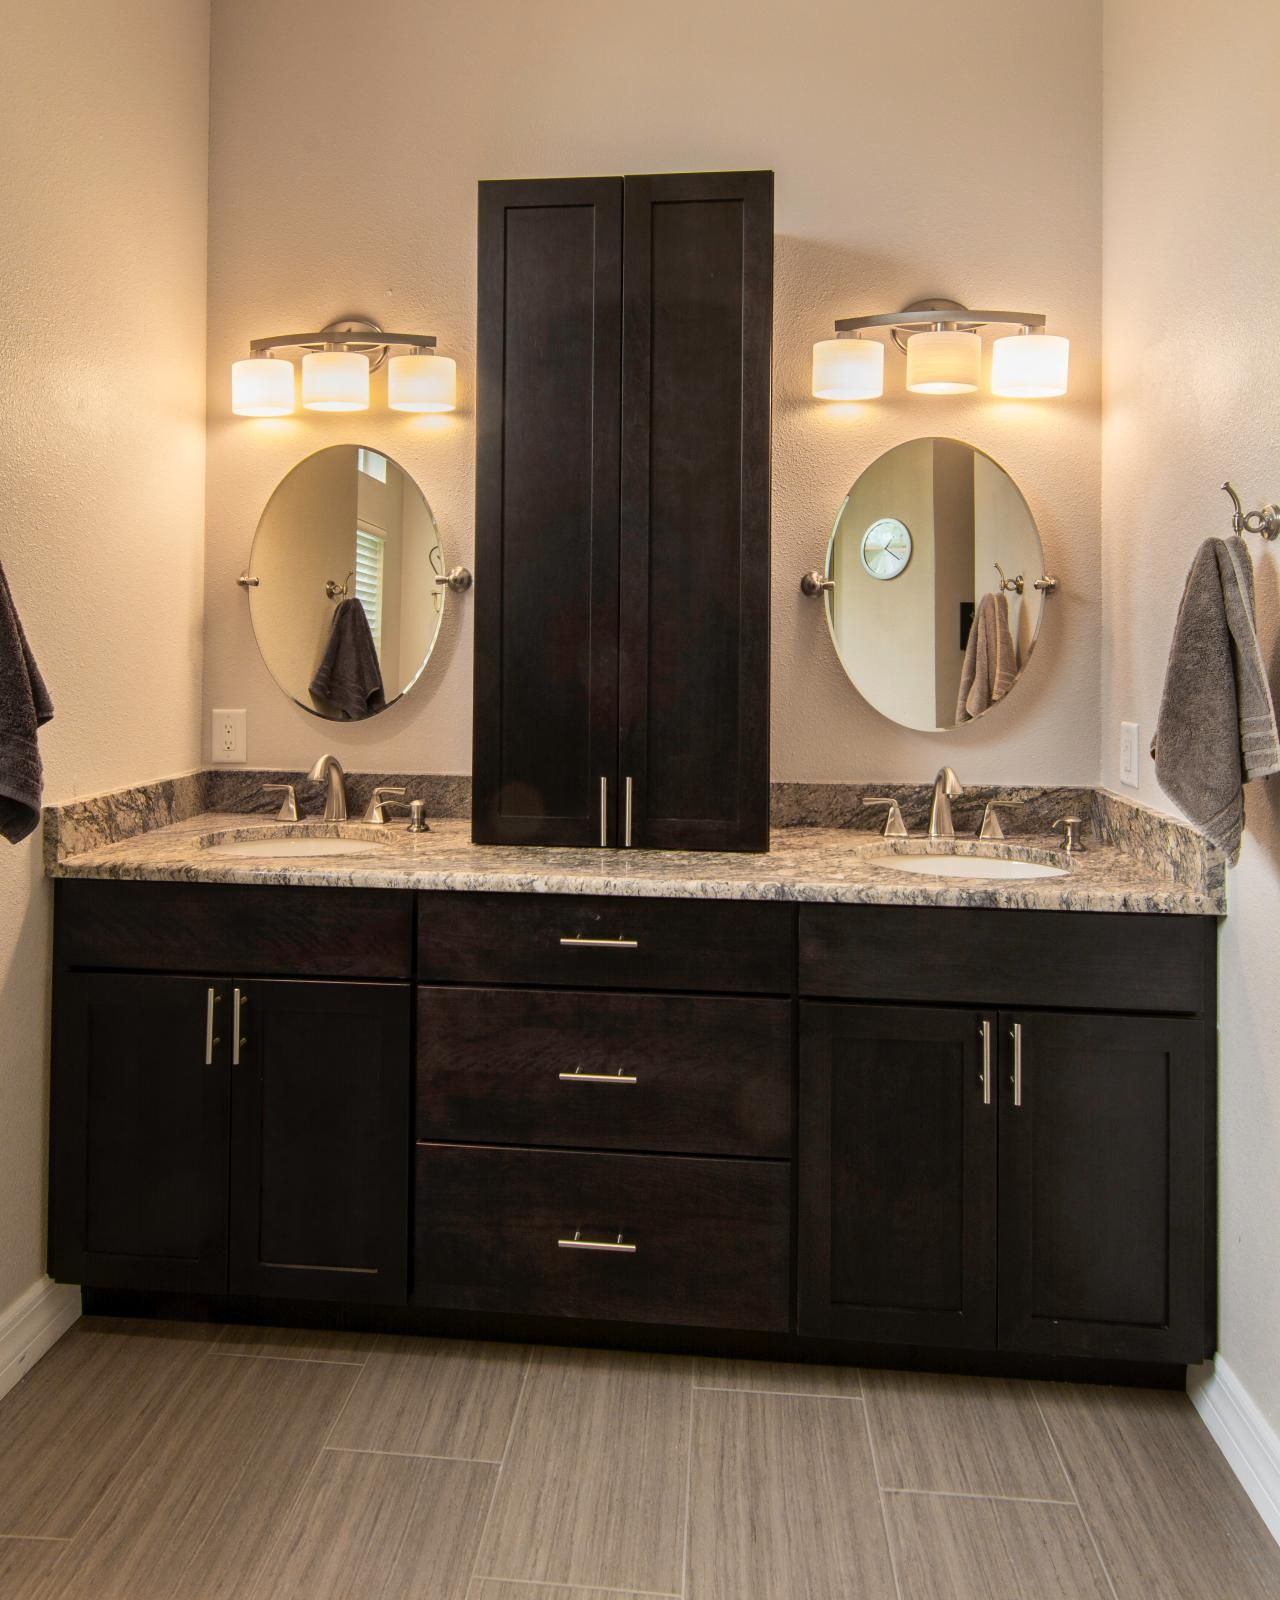 Dark Brown Vanity This Master Bathroom Features A Double Sink Vanity With